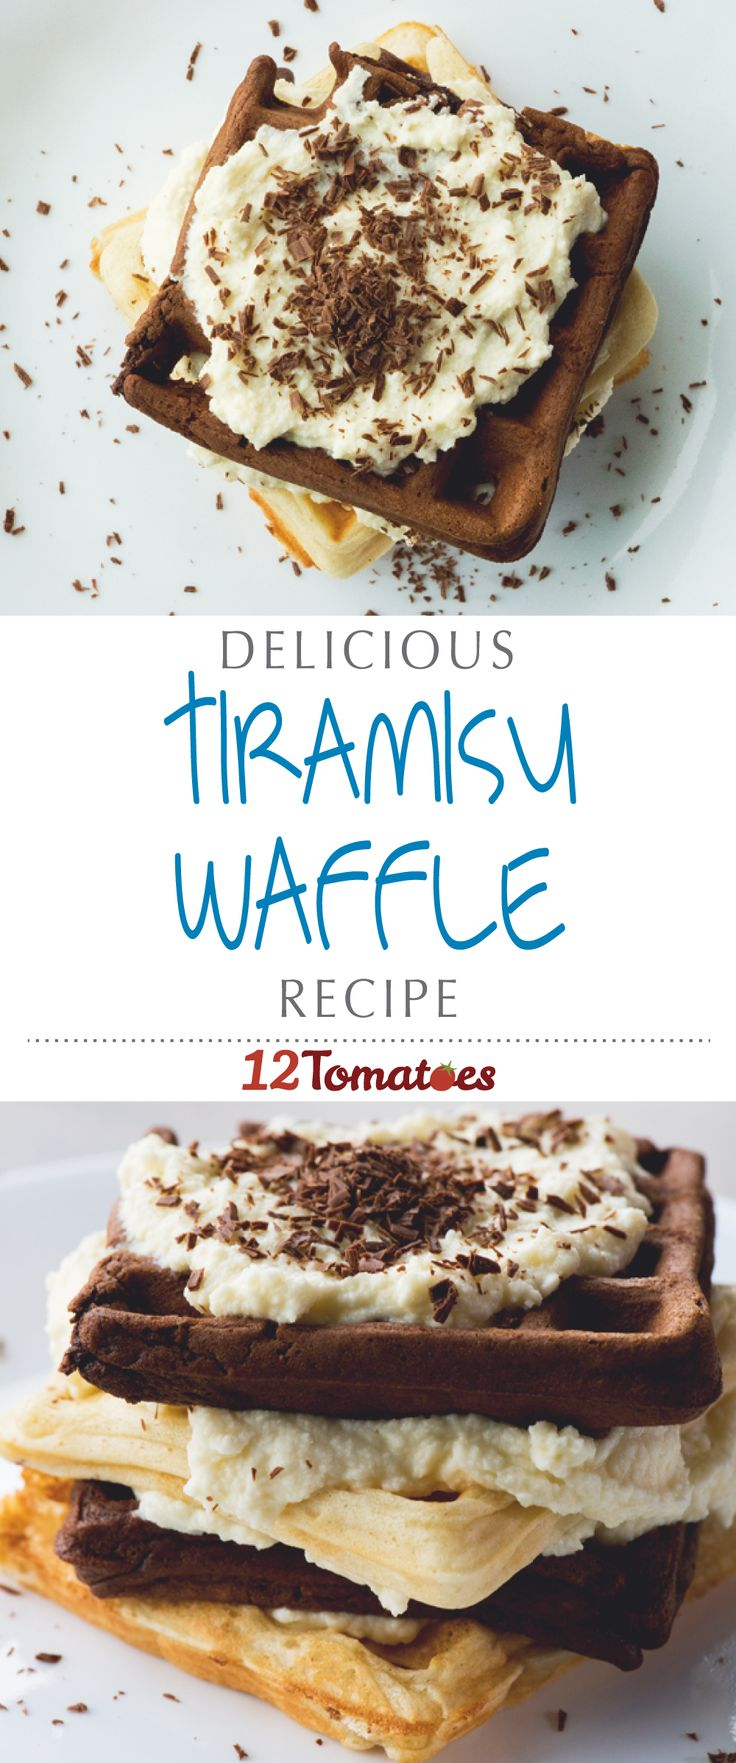 Tiramisu Waffles | Now we can have a favorite dessert for breakfast…. And who doesn't want that?!